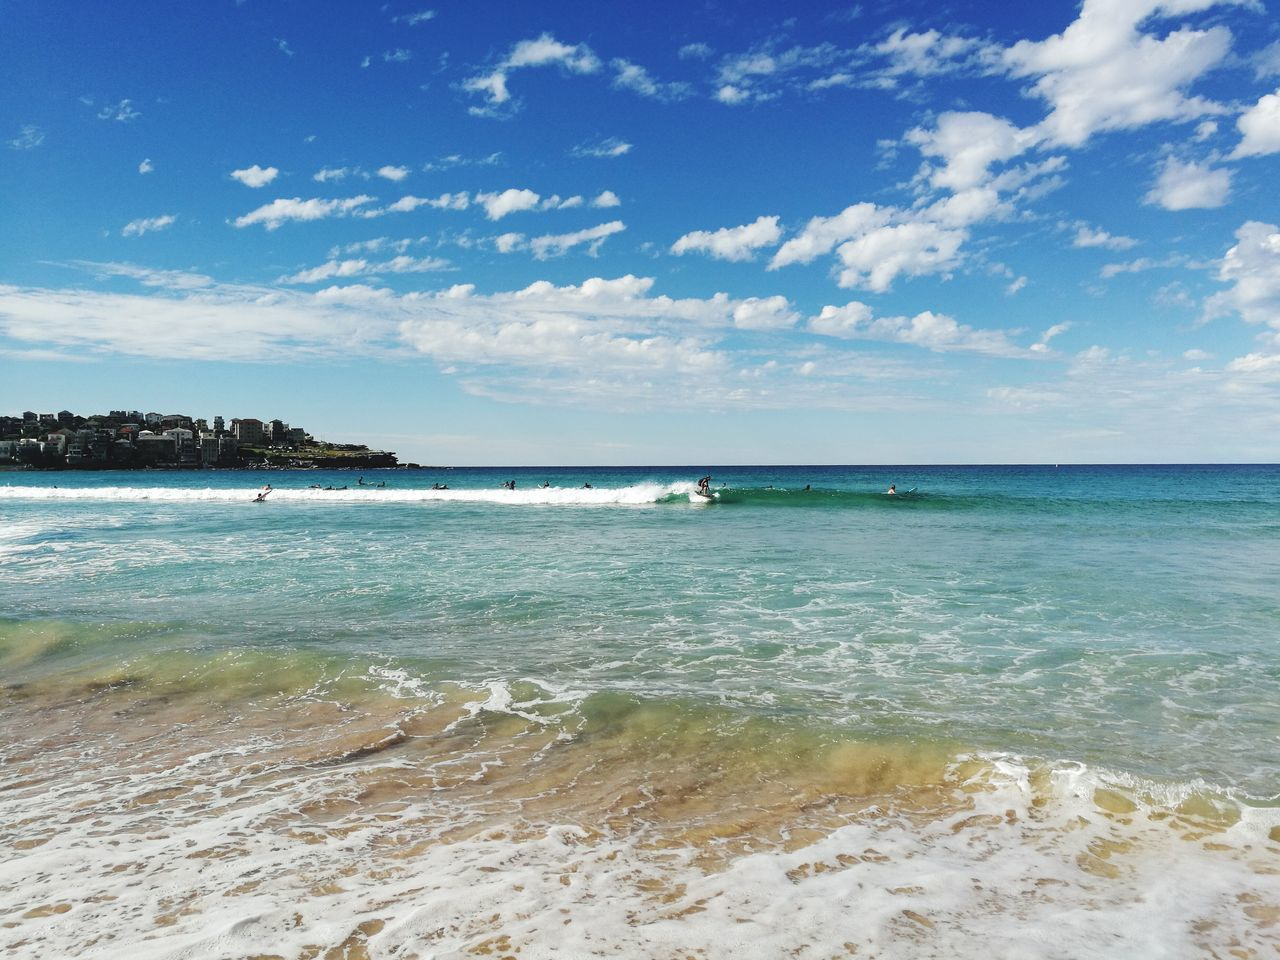 Bondi Beach, Sydney - Australia Sea Beach Horizon Over Water Sand Vacations Travel Destinations Tourism Landscape Scenics Cloud - Sky Idyllic Tranquil Scene Water Nature Tranquility Sky Summer Blue Outdoors Beauty In Nature Bondi Beach Australia Surfing Surf Wave